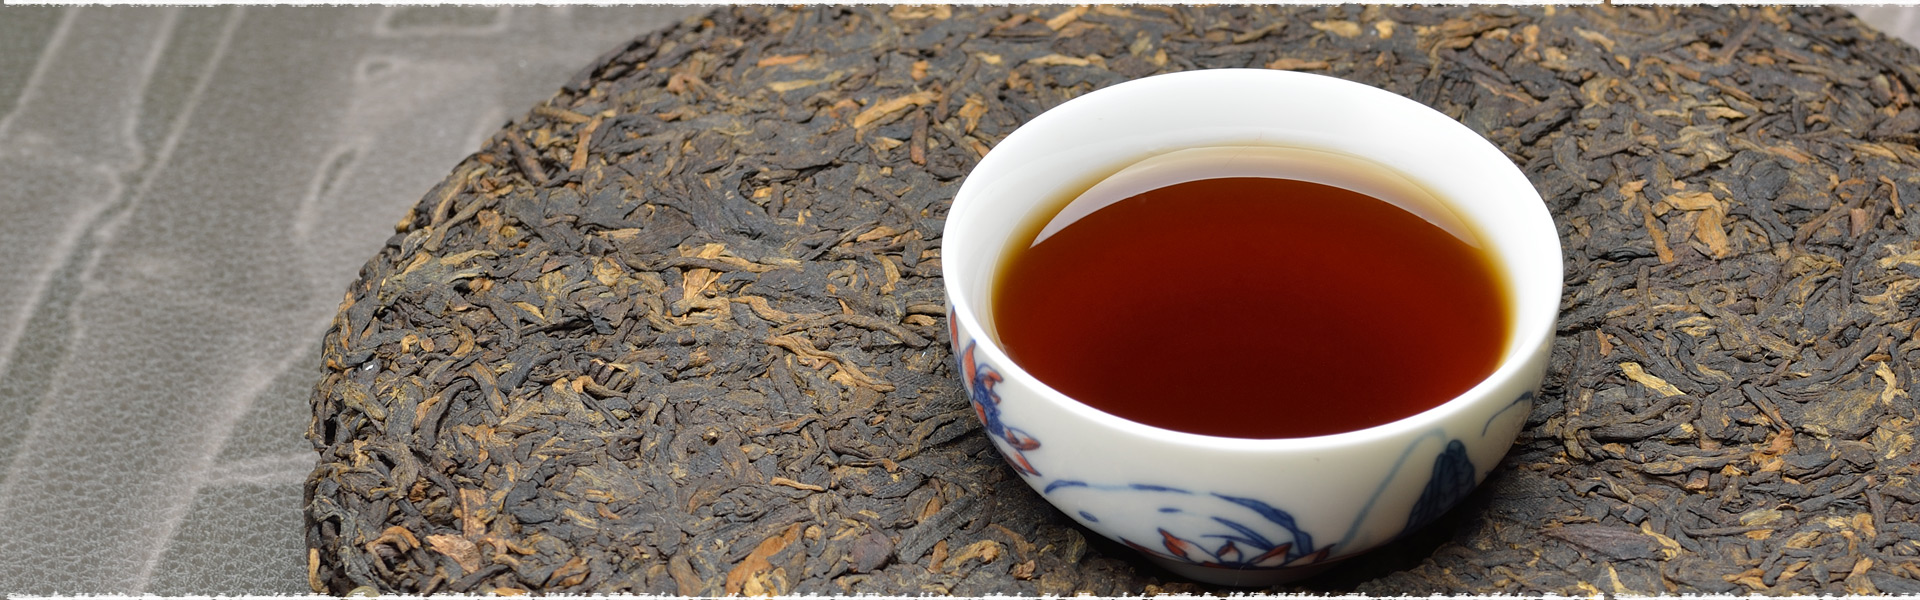 Miracle Weight Loss Tea from China – How Pu-erh Tea Can Help You Shed Pounds